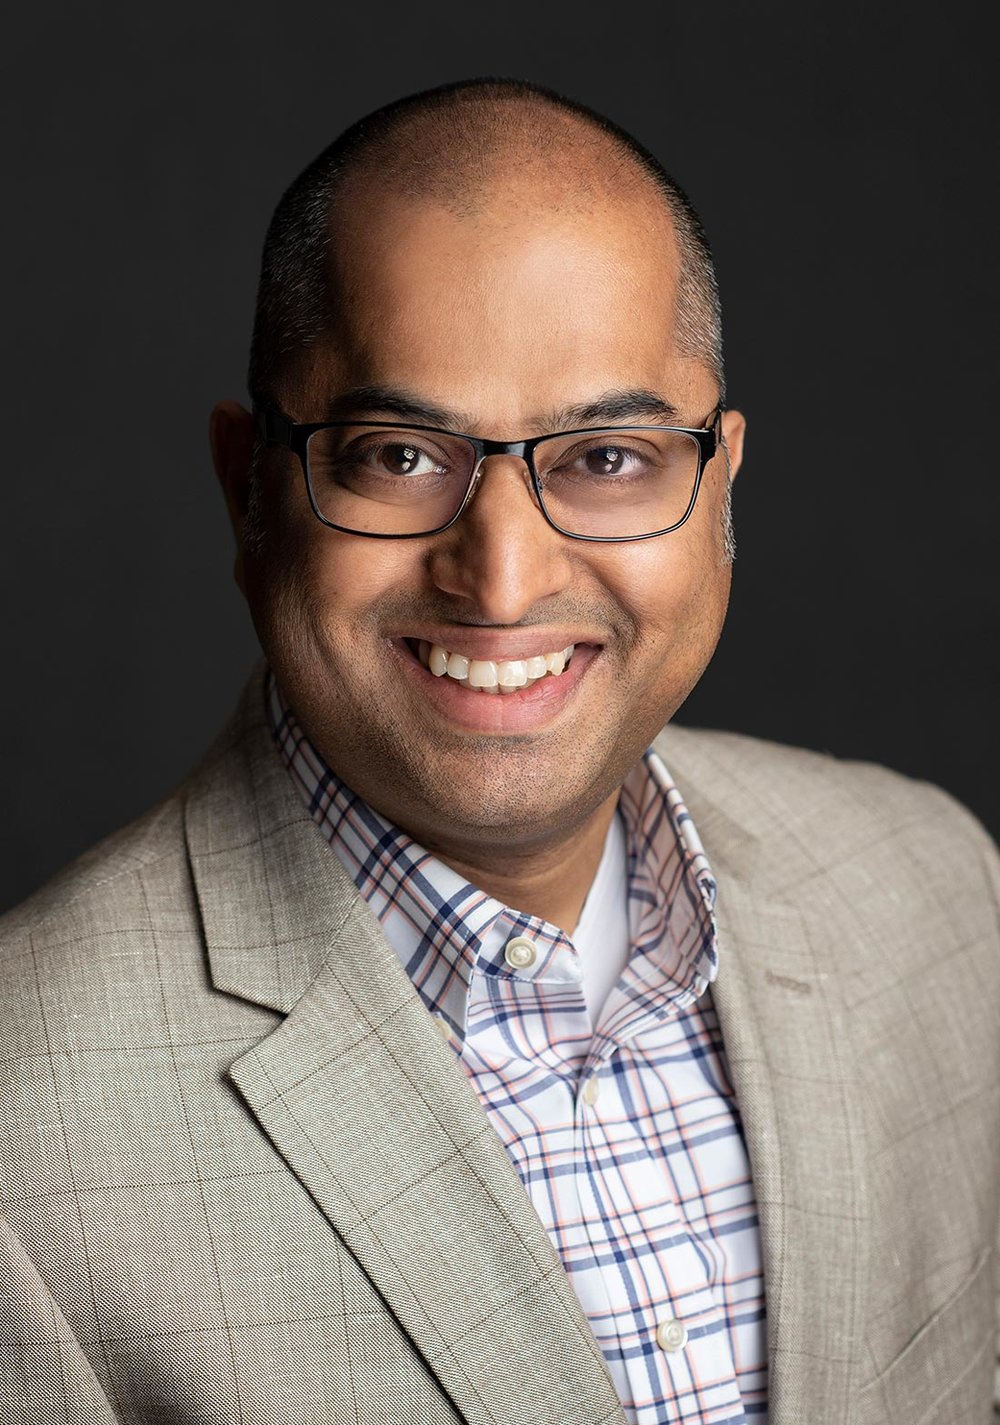 Professional headhshot of man with glasses and jacket